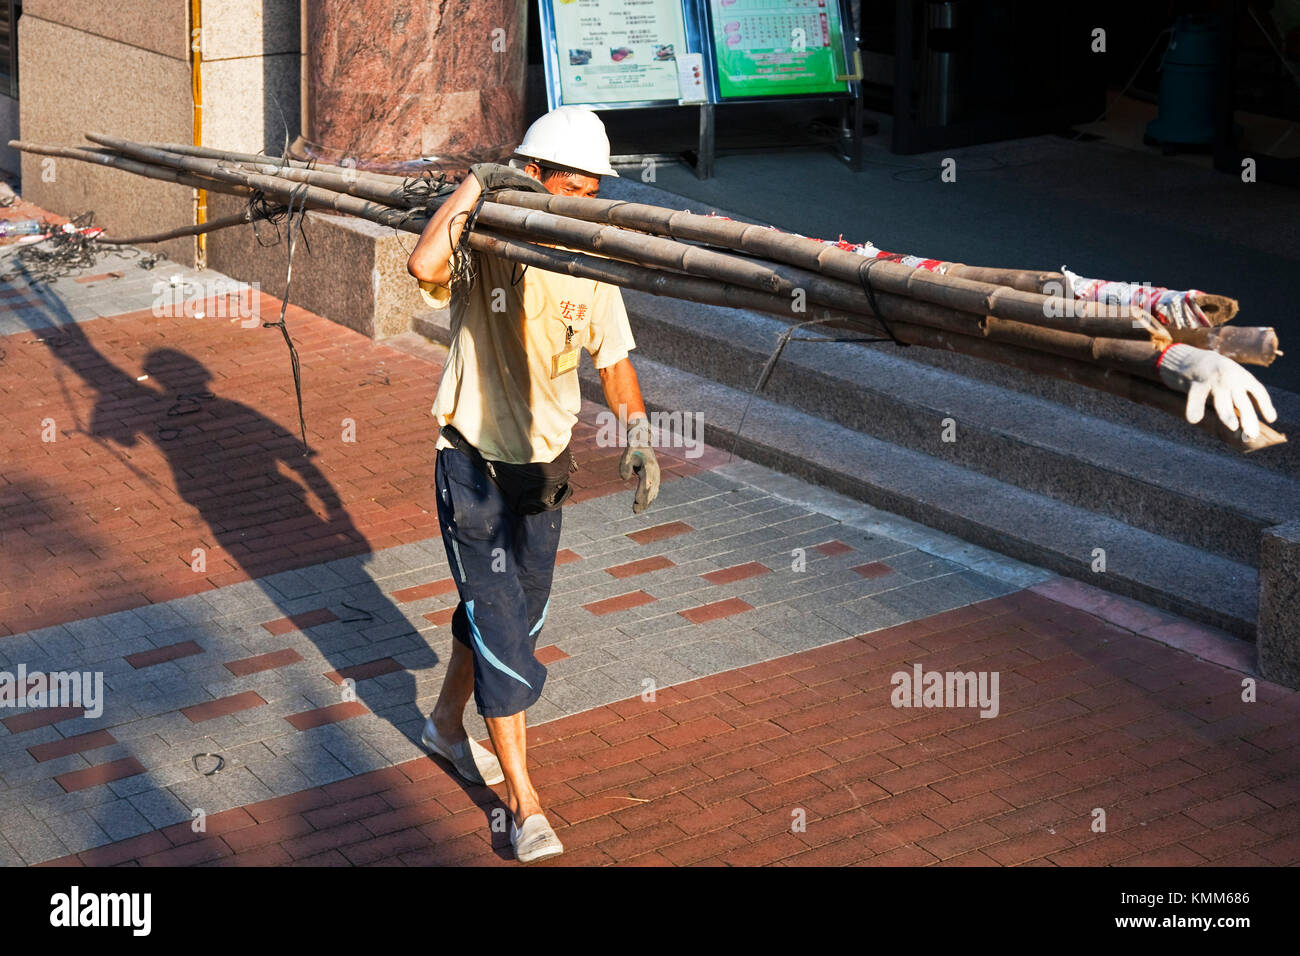 Chinese labourer, Hong Kong island, SAR, China - Stock Image